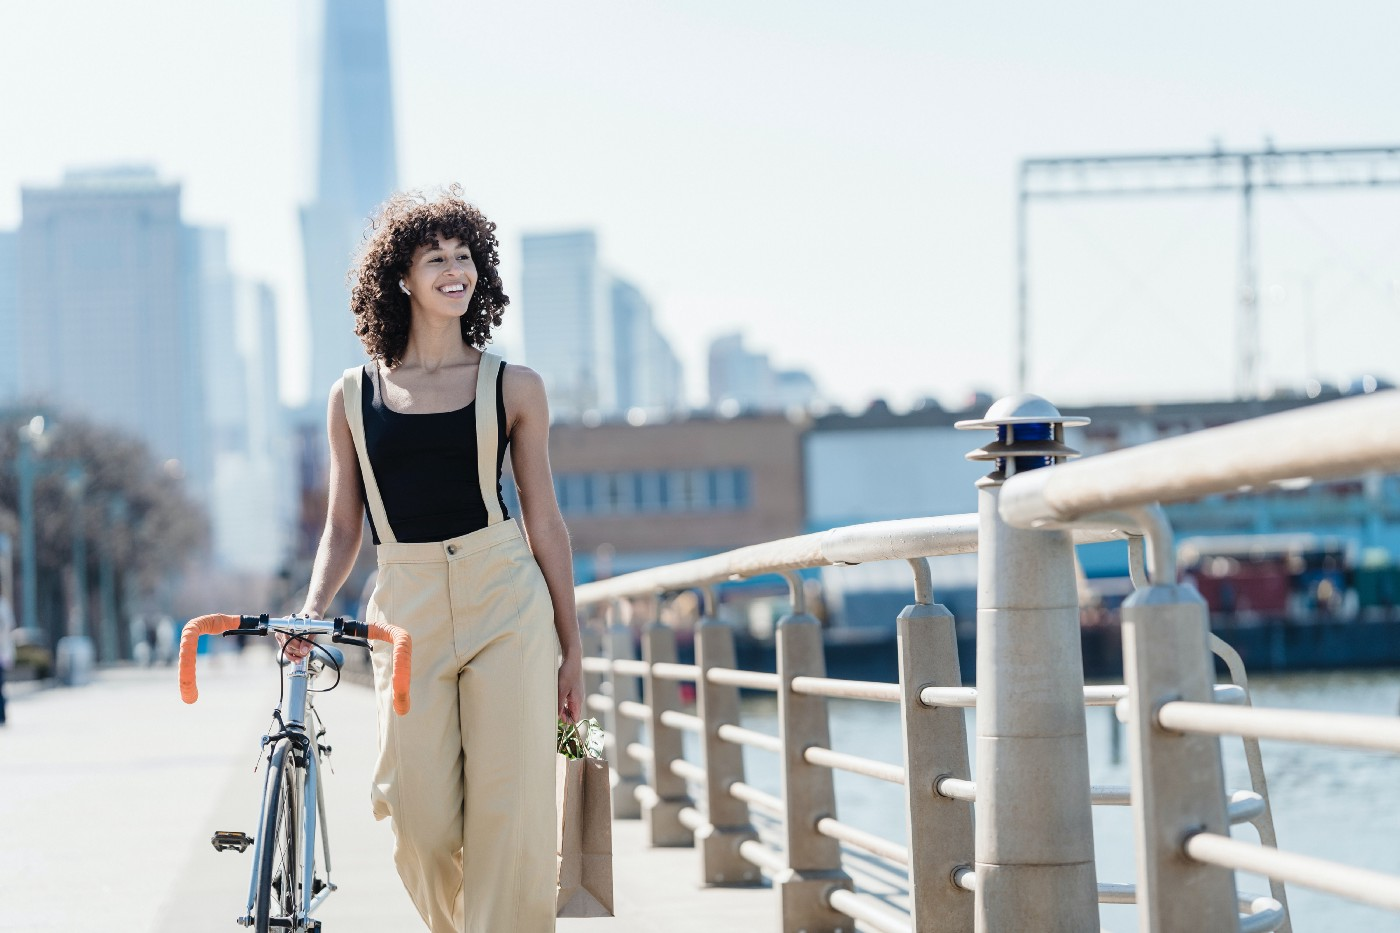 Woman walking over bridge with her right hand resting on seat of a bike that she's pushing alongside her. She has a big smile on her face with city skyline in background.